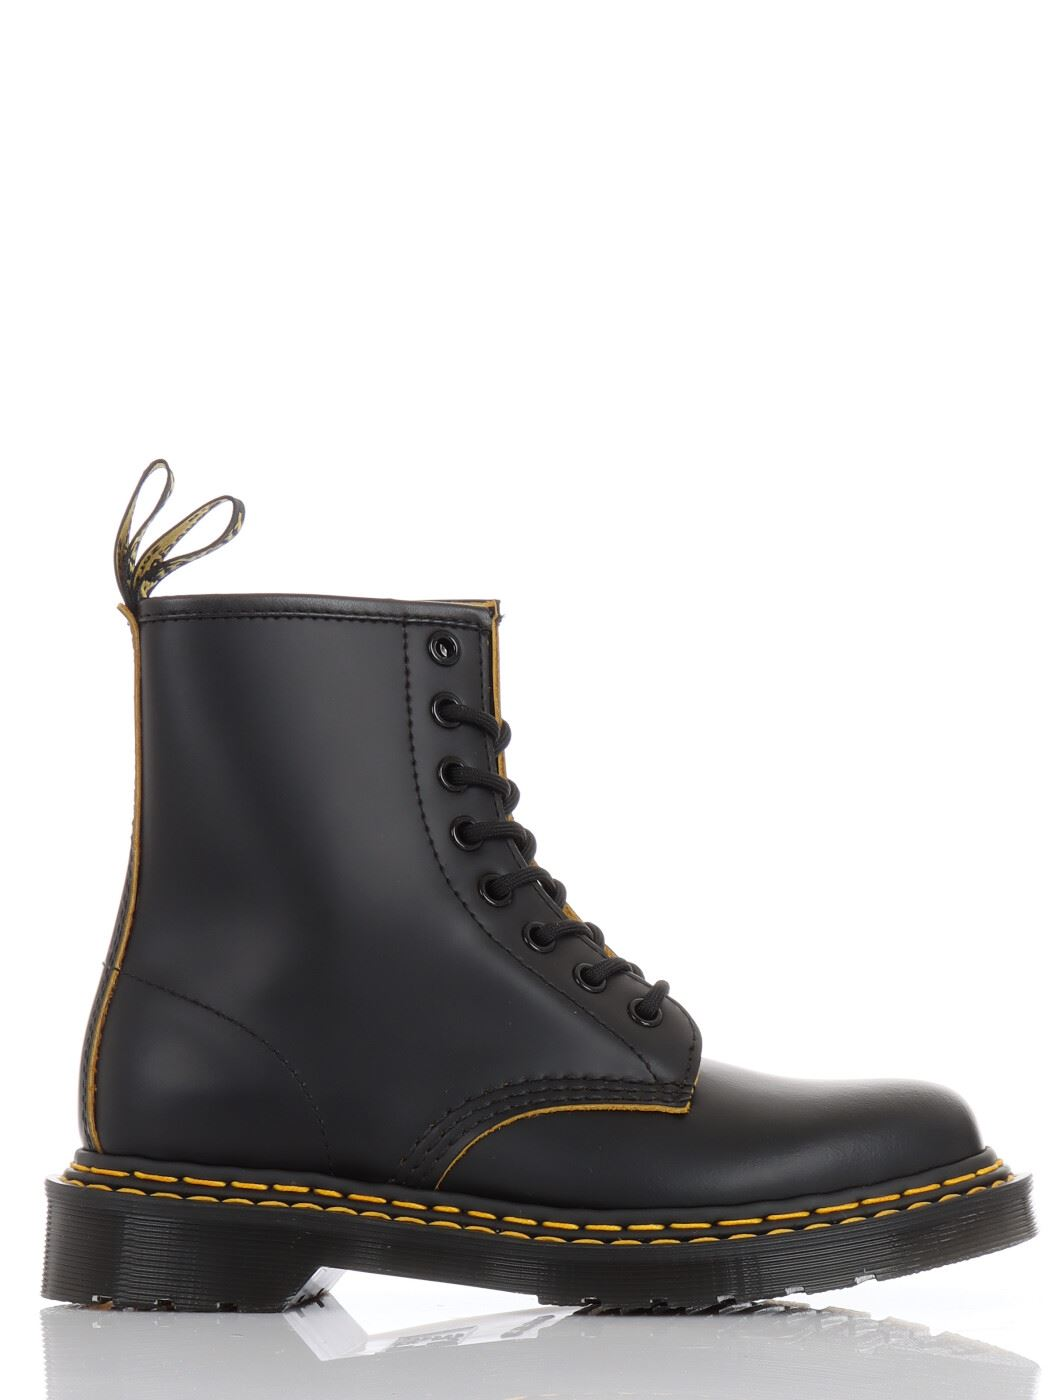 ANFIBI DR.MARTENS 1460 DS SMOOTH SLICE